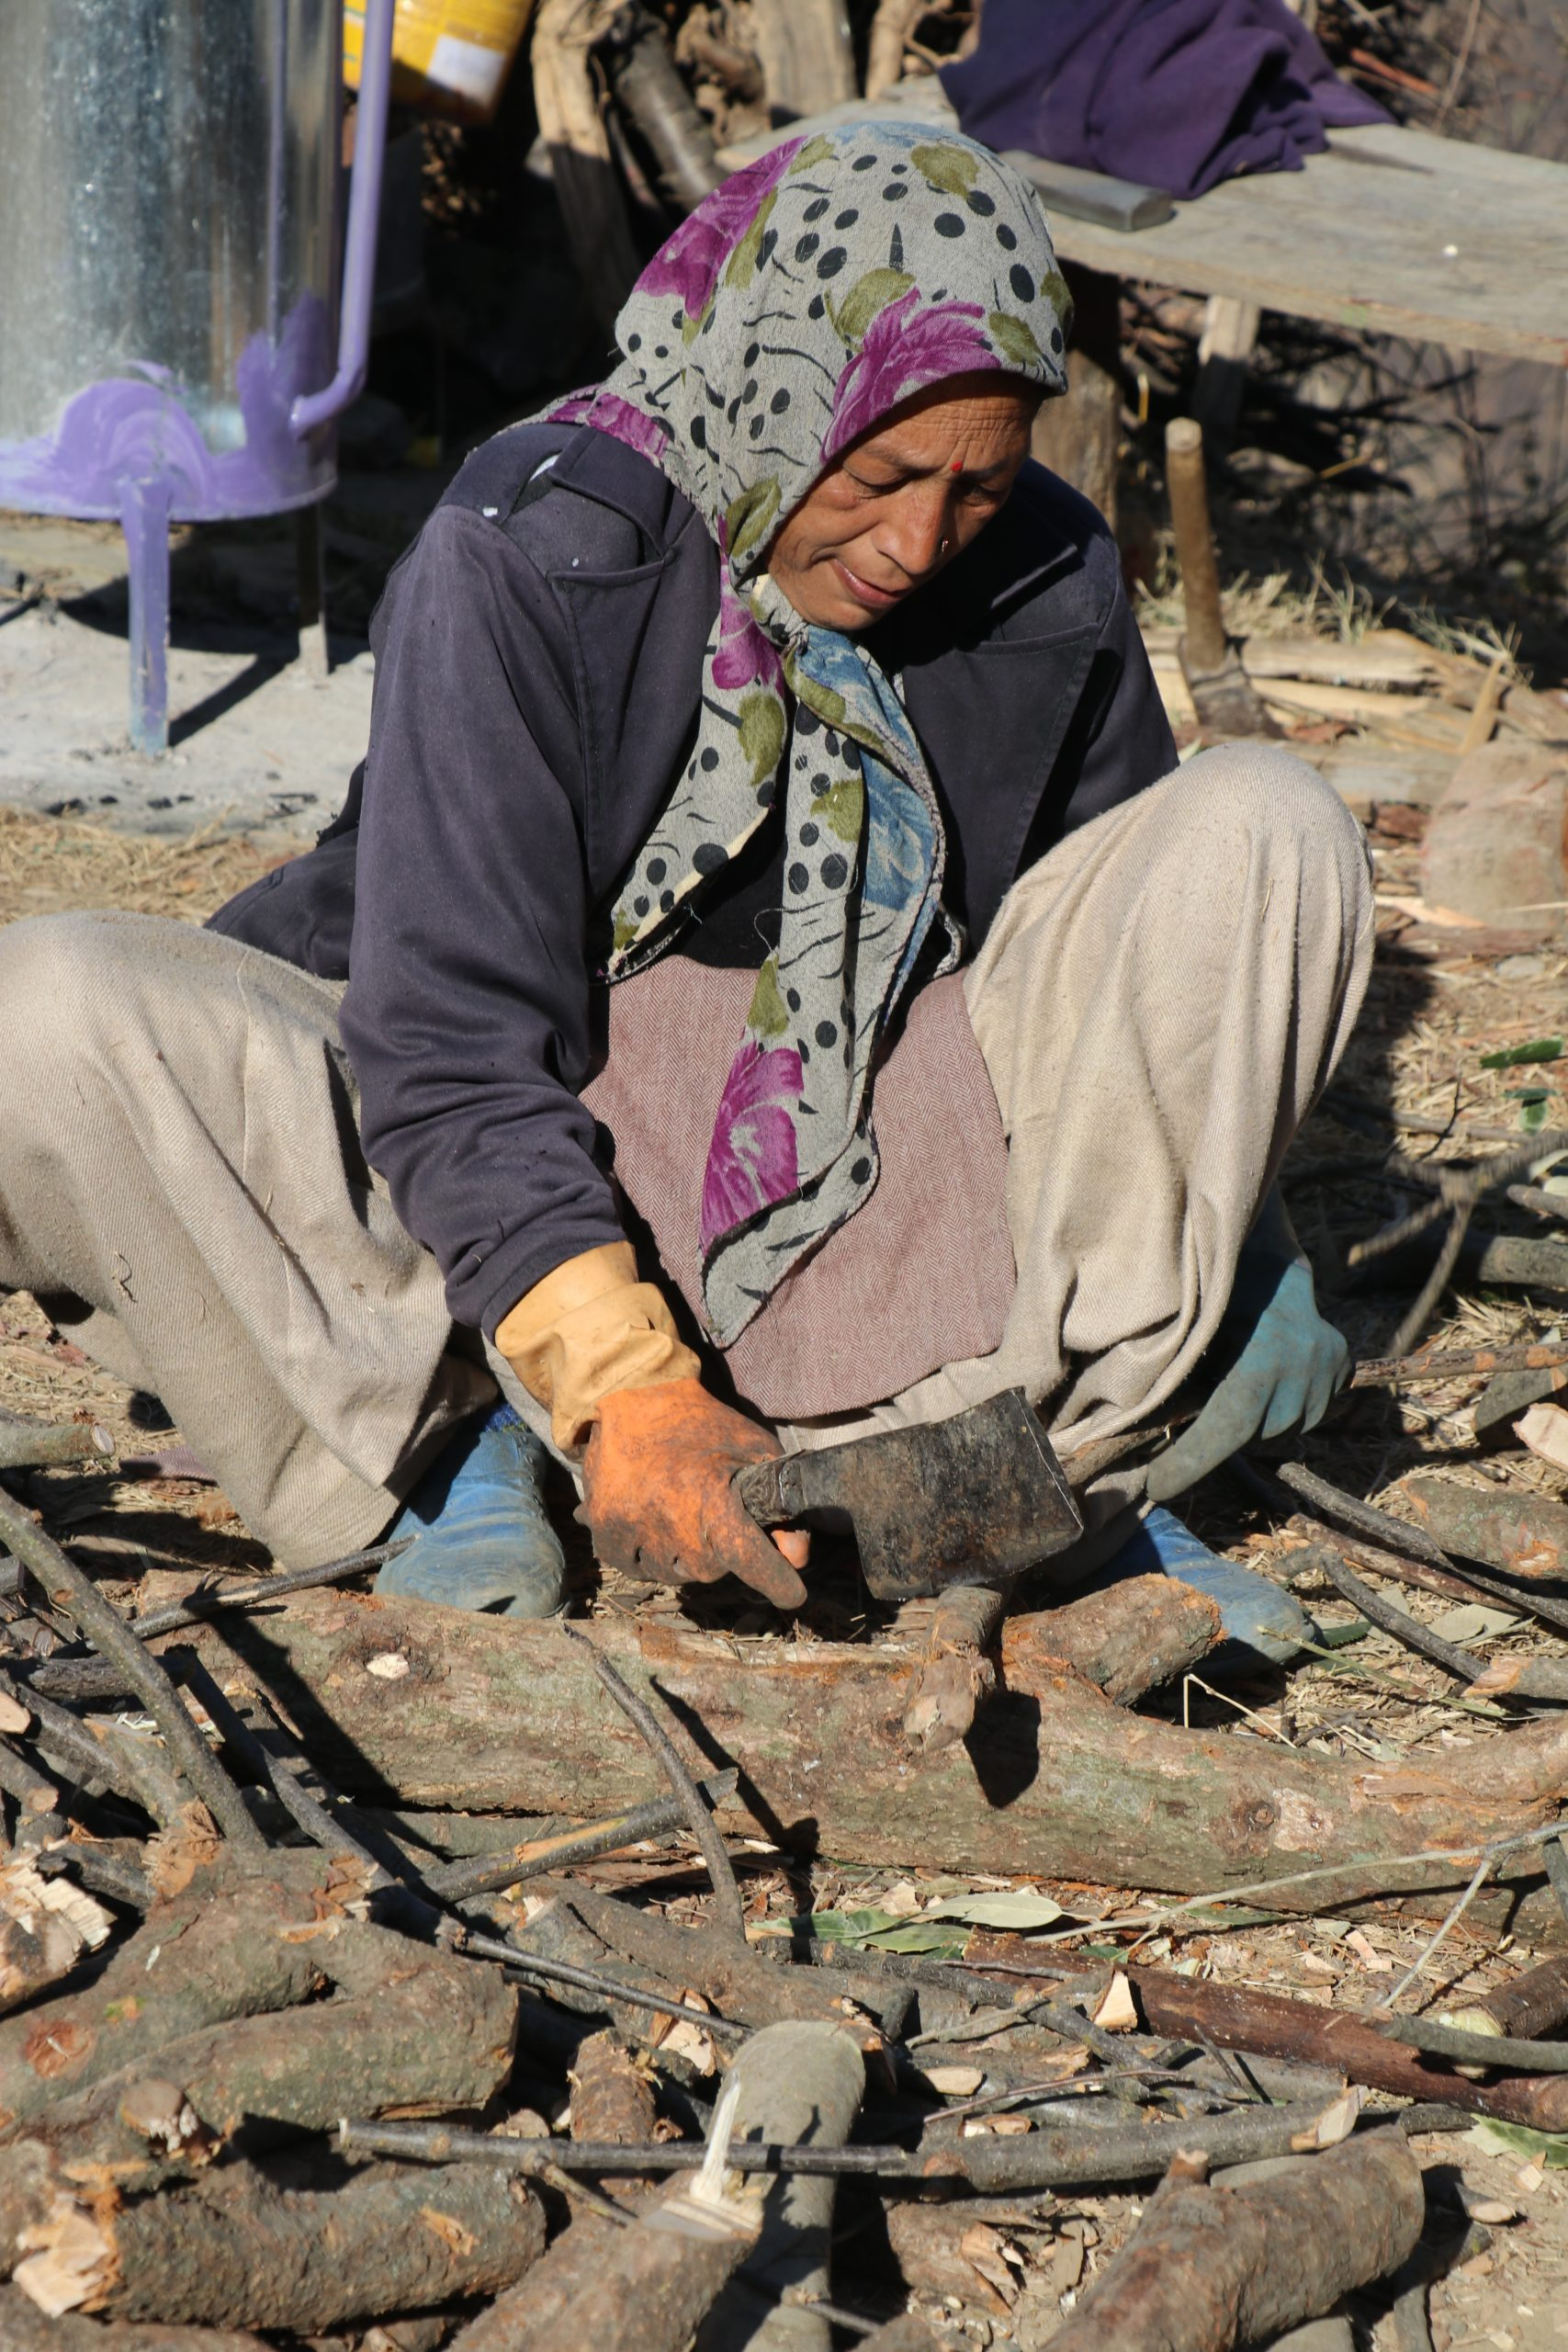 A village woman cutting woods with a blade